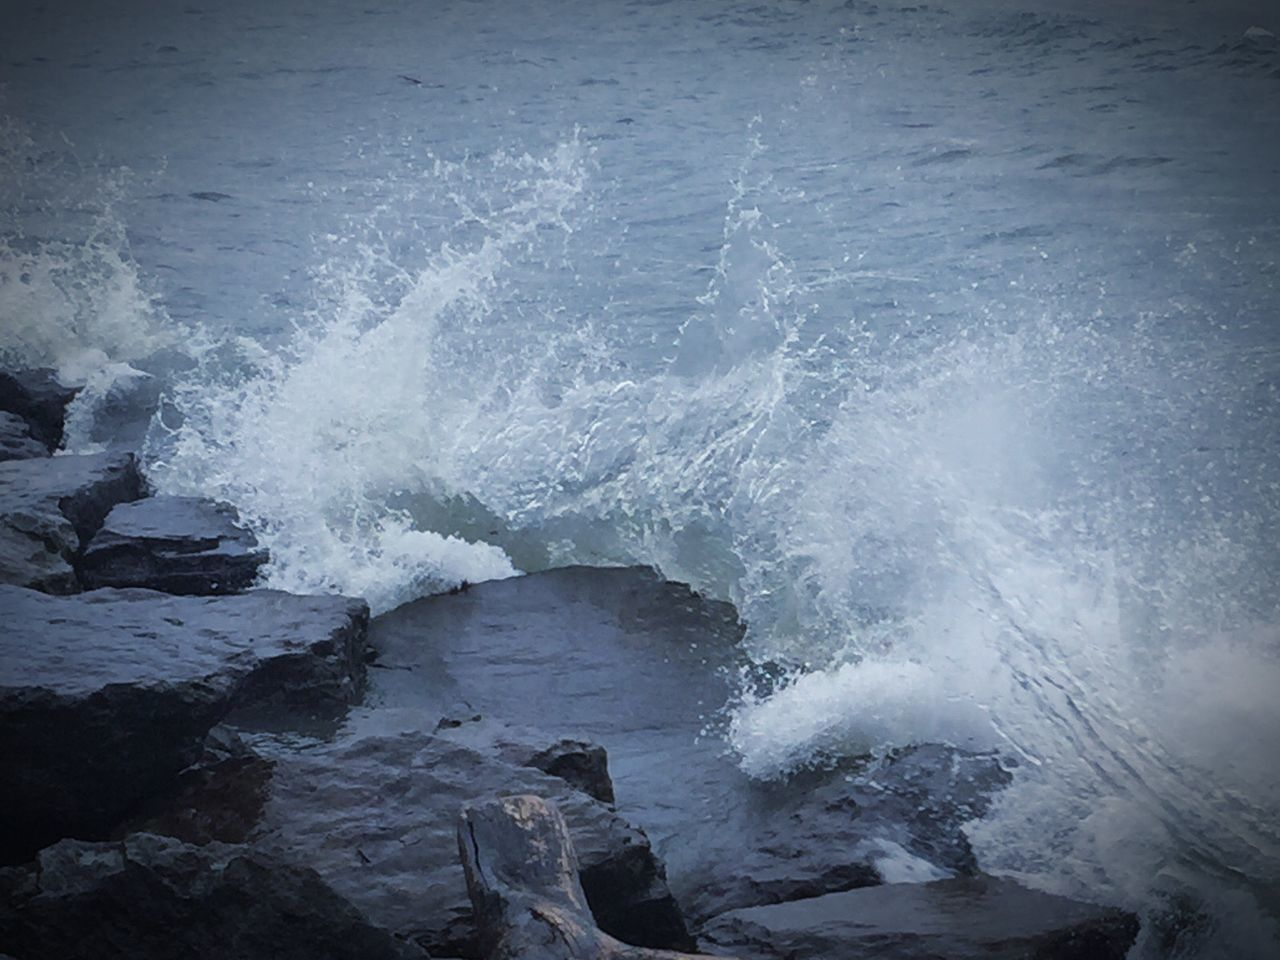 motion, power in nature, water, sea, wave, beauty in nature, nature, no people, outdoors, scenics, day, force, crash, sky